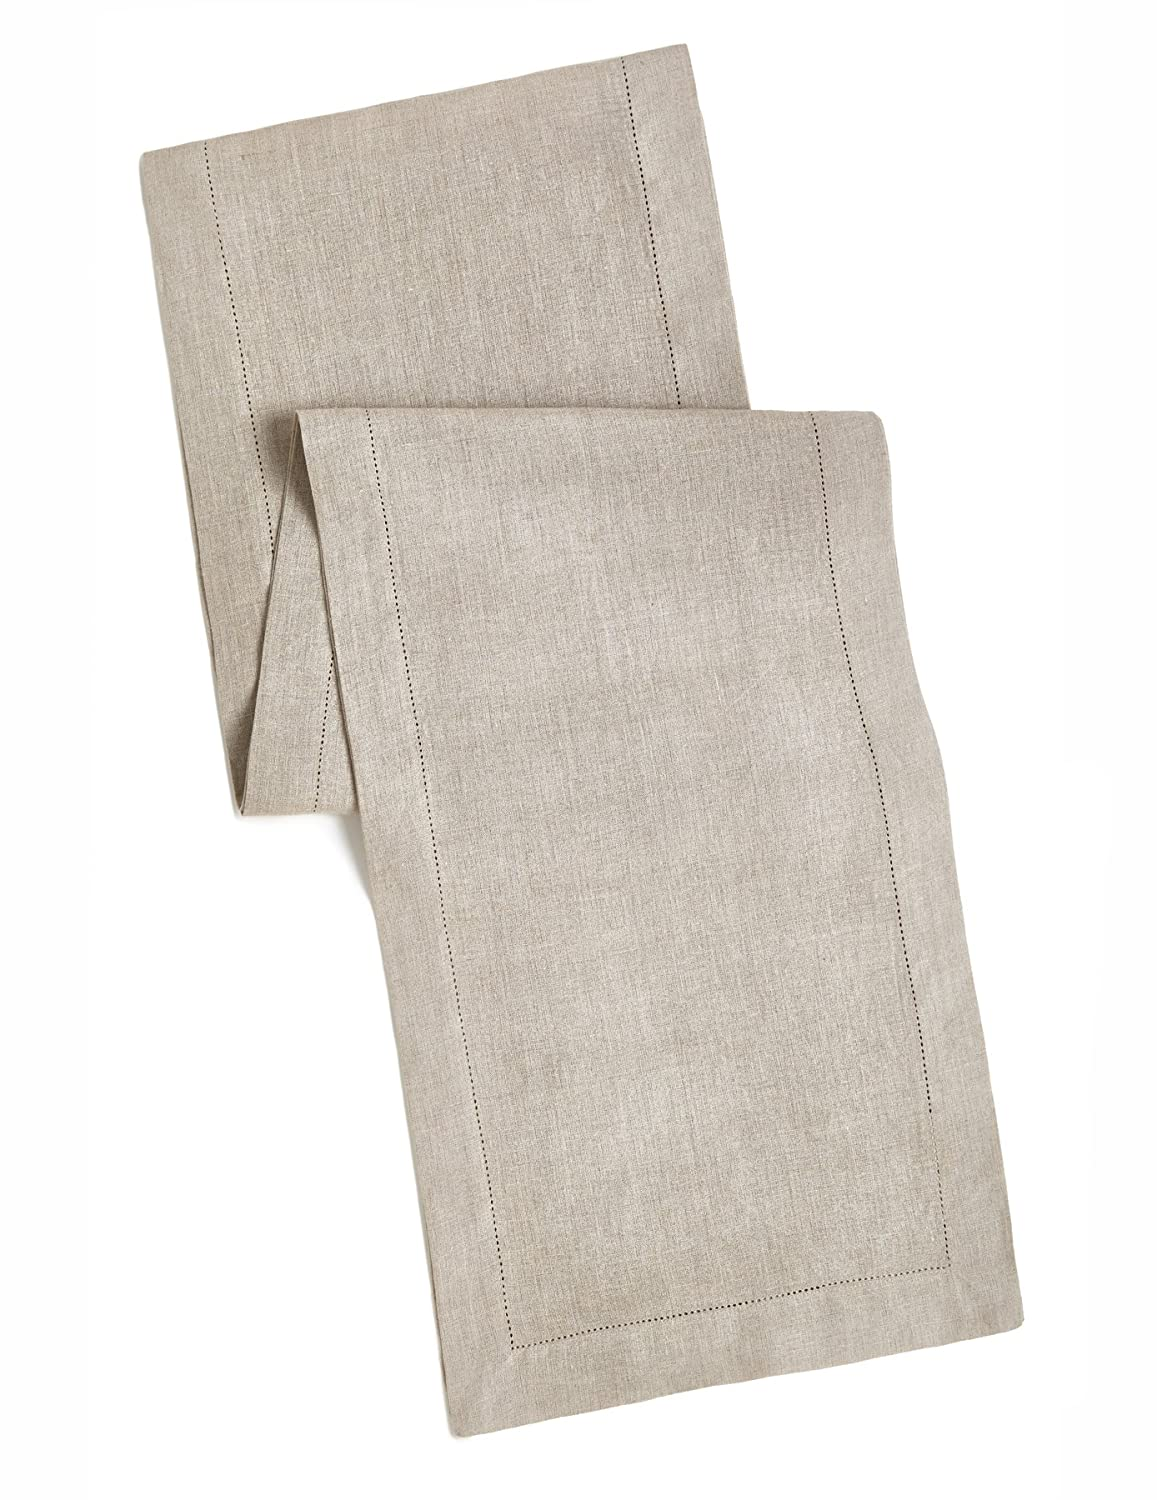 100% Linen Hemstitch Placemats - (Set of 4) Size 14x19 Charcoal - Hand Crafted and Hand Stitched Placemats with Hemstitch detailing. The pure Linen fabric works well in both casual and formal settings Orient Originals Inc. COMINHKPR80146